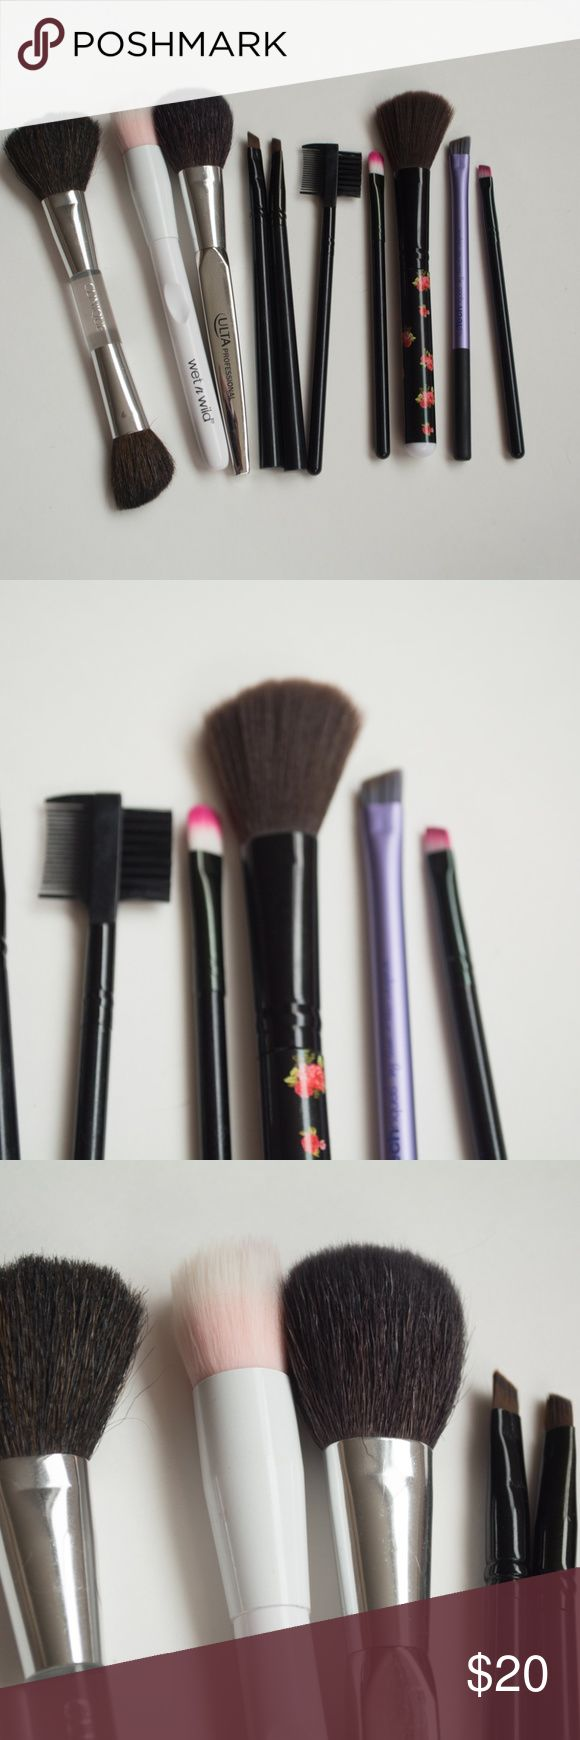 Makeup Brush Set $$OBO$$ Ulta Professional brush - never used Clinque double sided brush - never used 2 target eyeliner brushes - used and washed rose handled brush - never used wet n' wild brush - used and washed real techniques angled brush - used and washed 2 pink tipped brushes and brow brush - used and washed  CLOSET CLEAR OUT!!!! Taking all offers made using the button, I especially give great deals on bundles. Note: I do not take offers of $5 or less. Also I do not trade. Makeup…